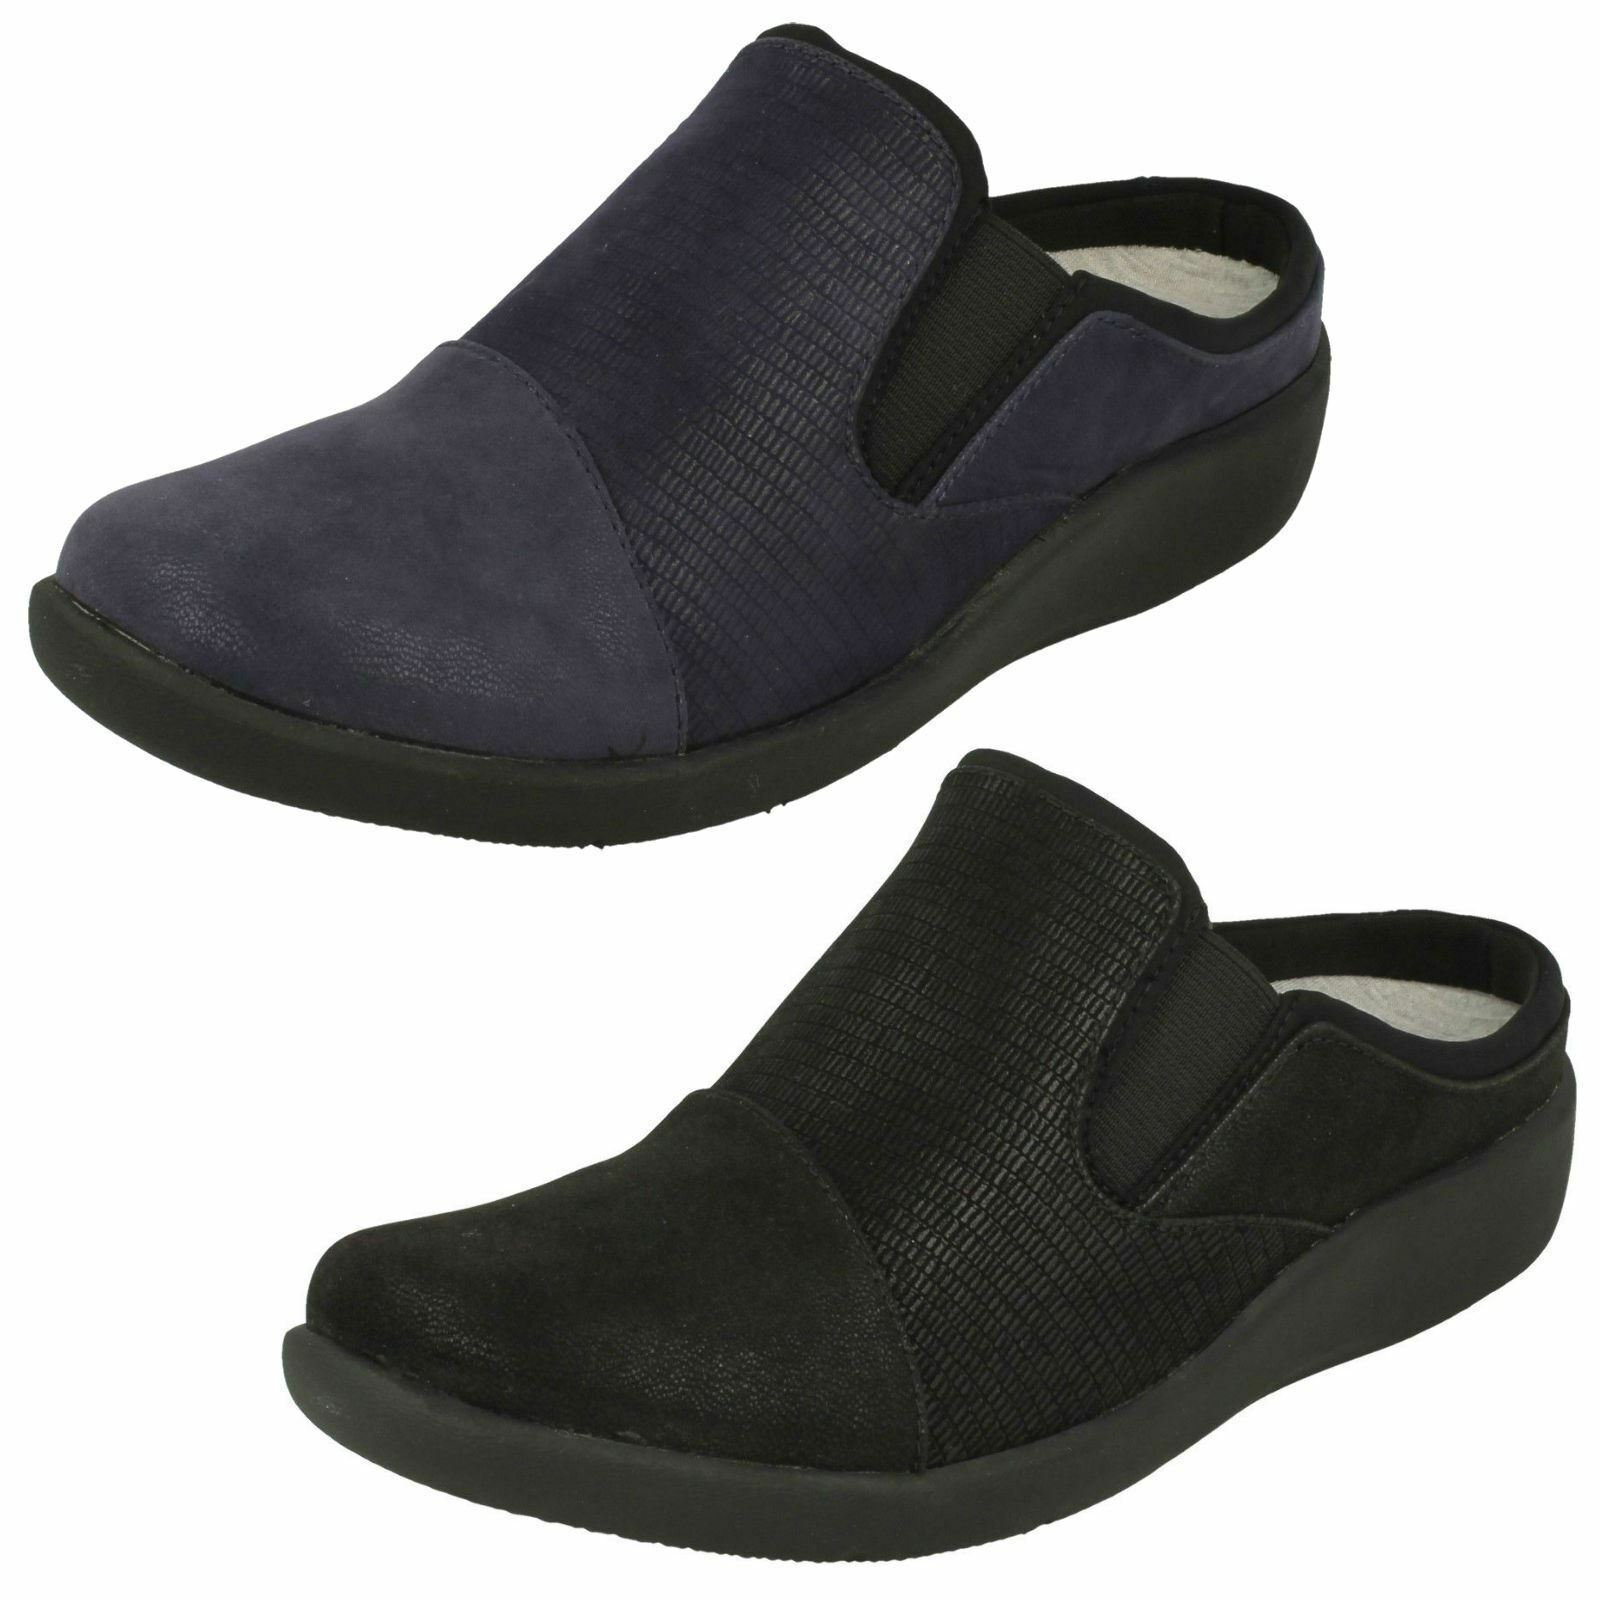 Ladies Clarks Cloud Steppers Sillian Free Casual Slip On Mules D Fitting